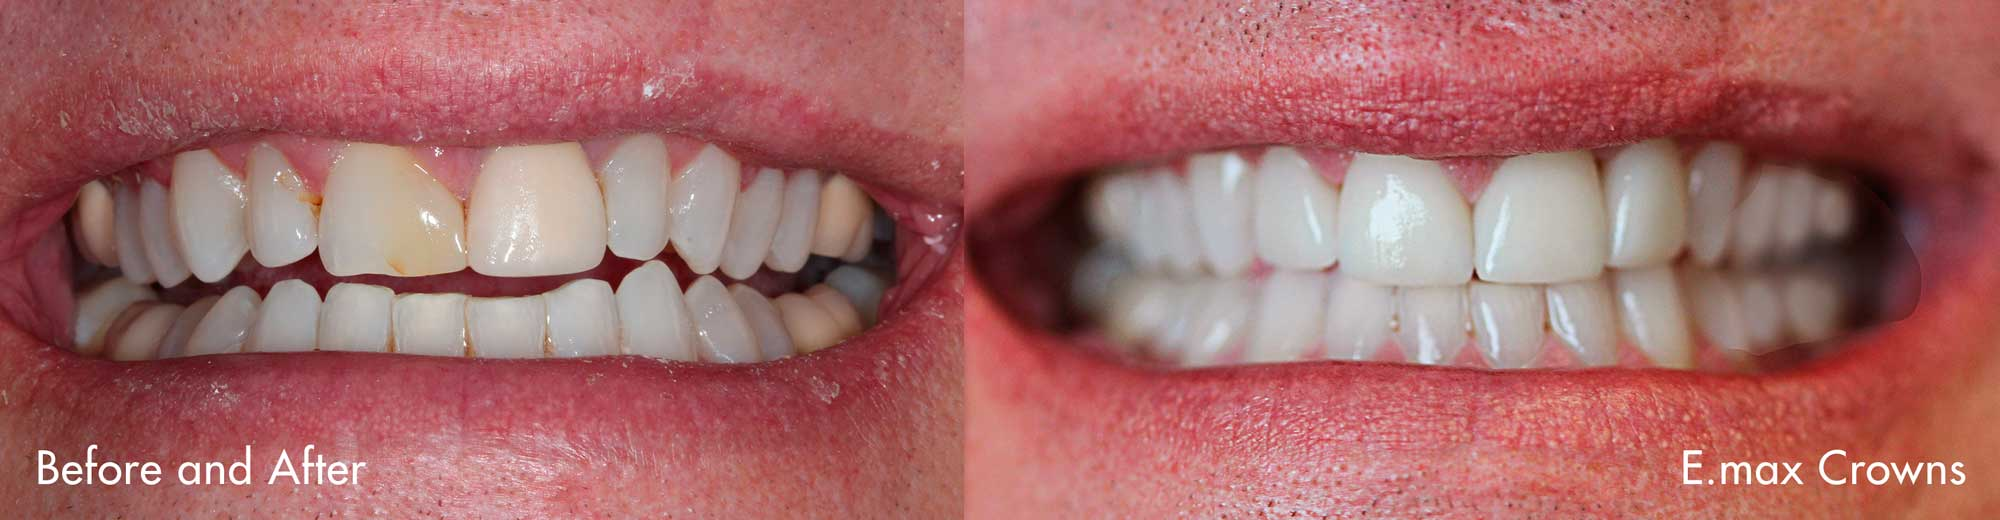 EmaxCrowns_NoImplant_Before+After.jpg